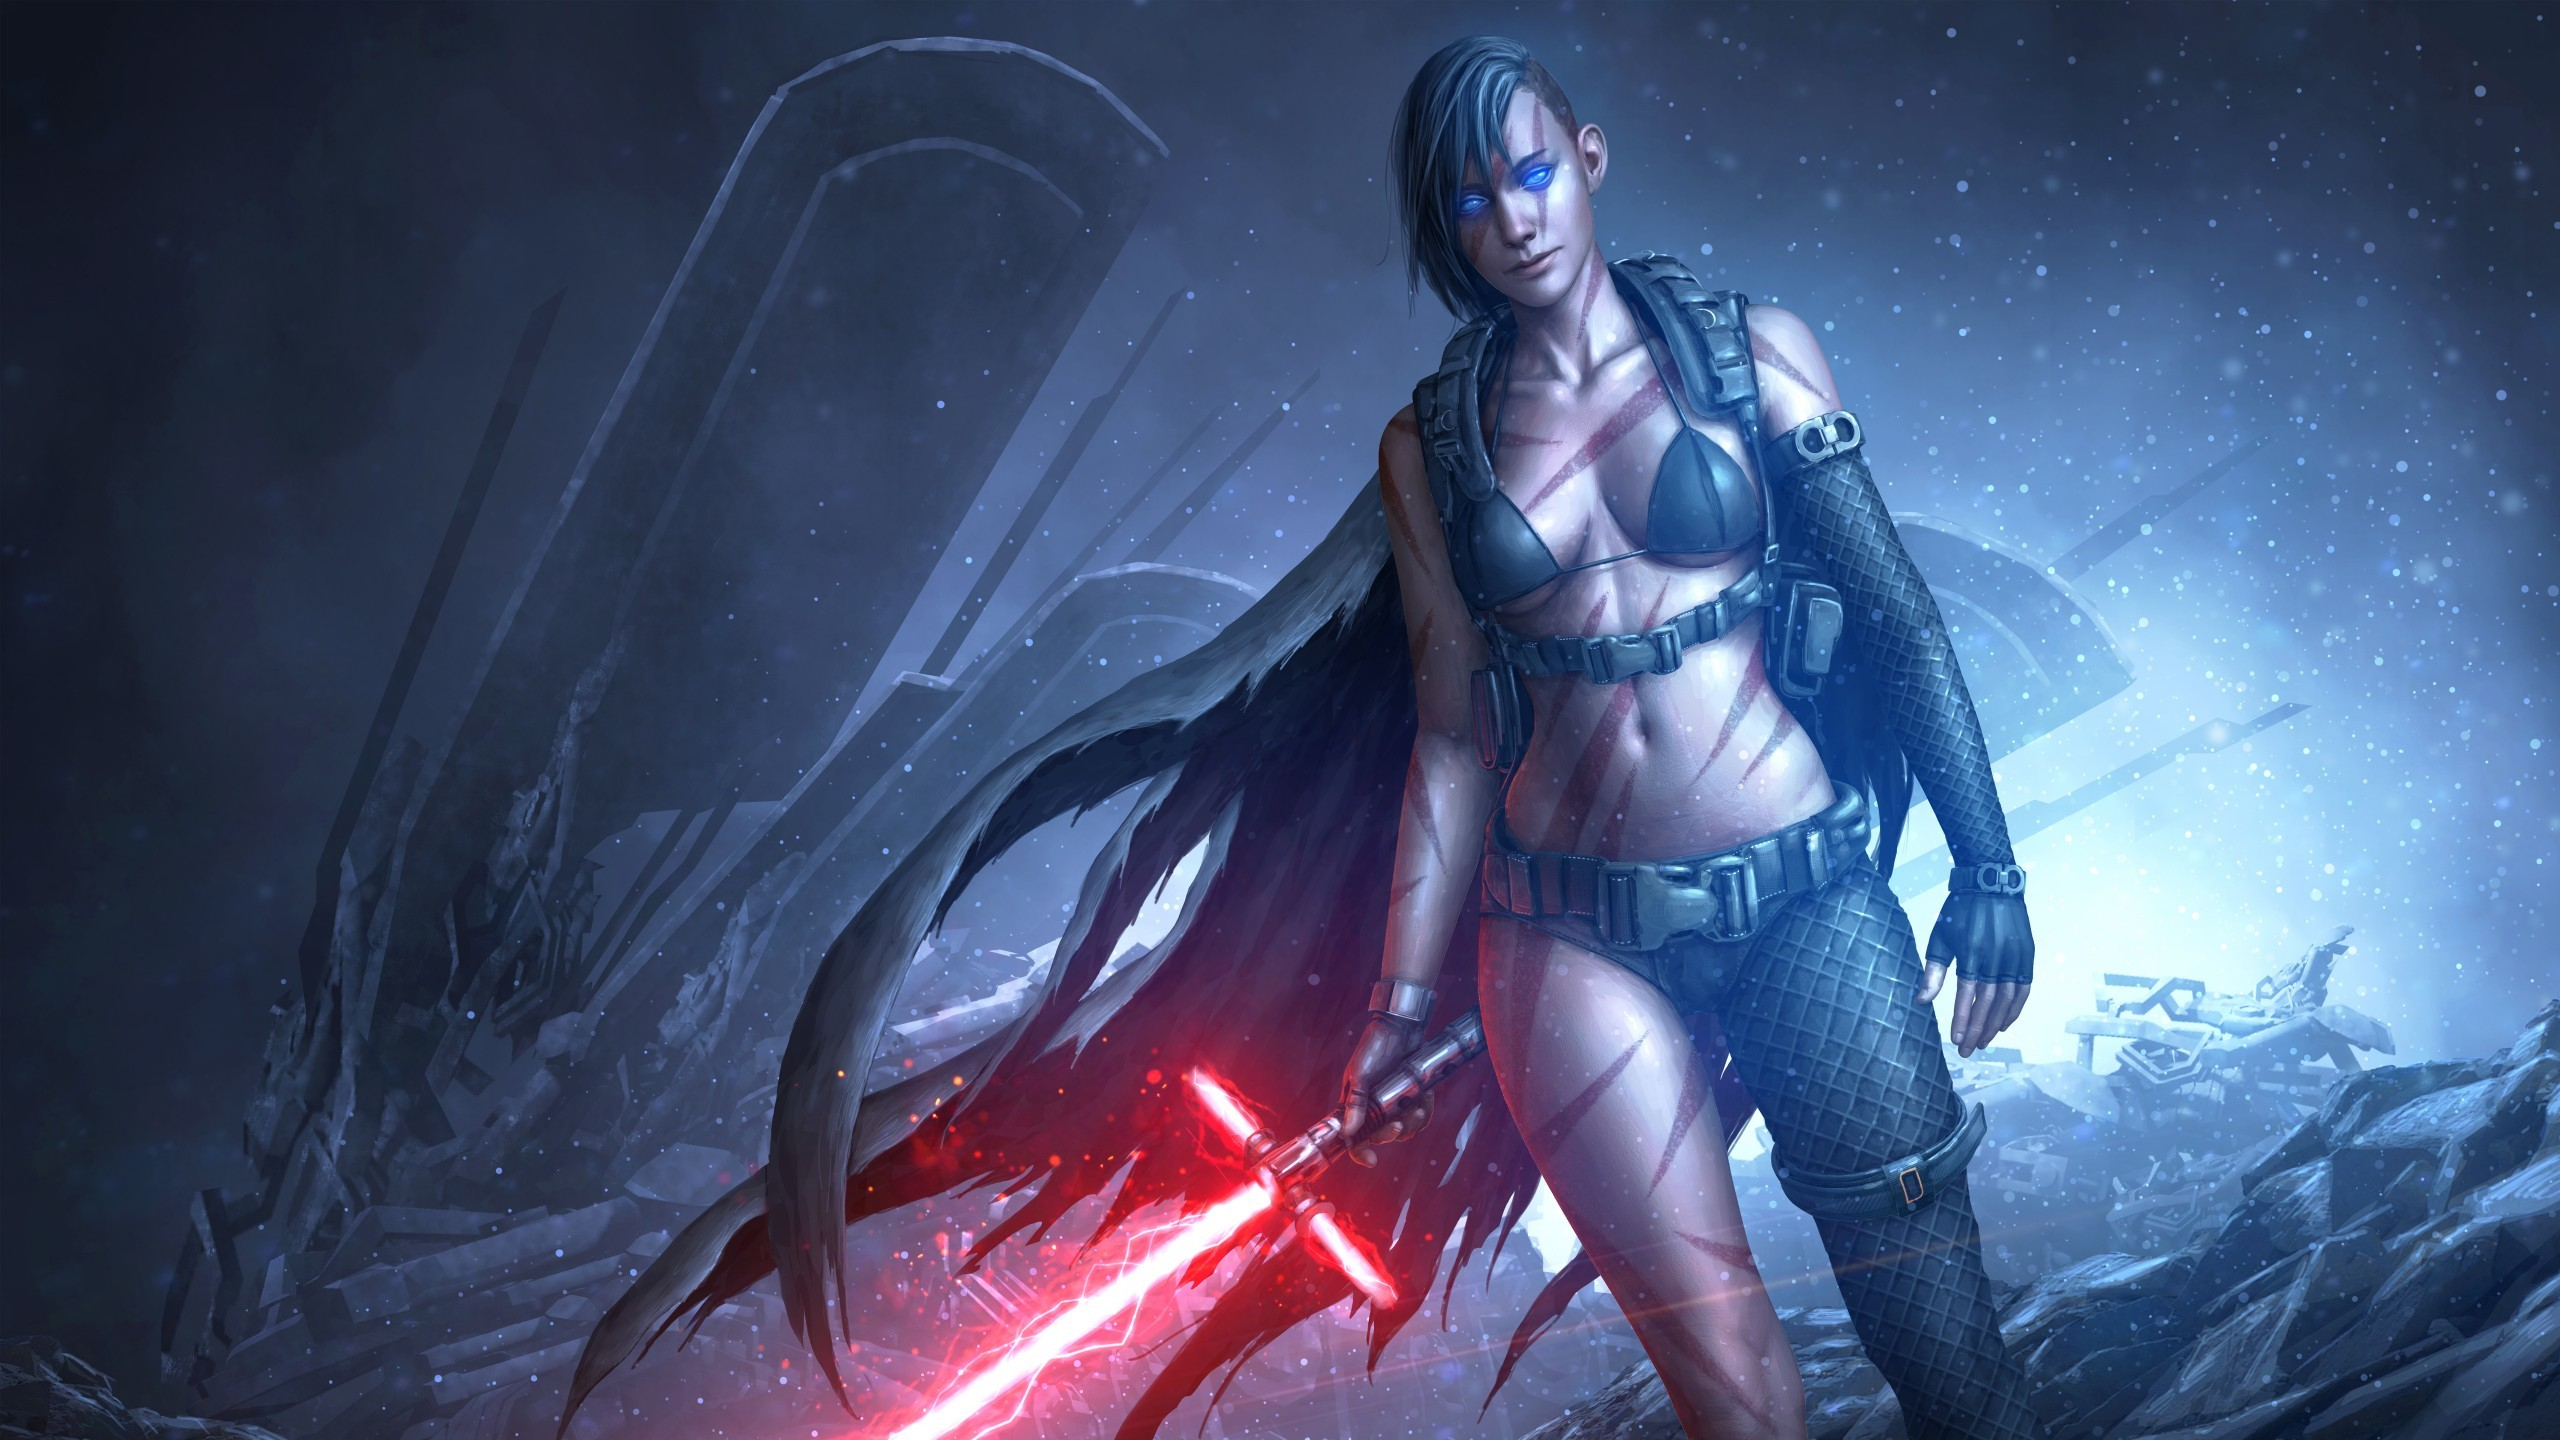 Lightsaber Backgrounds Posted By Ryan Anderson